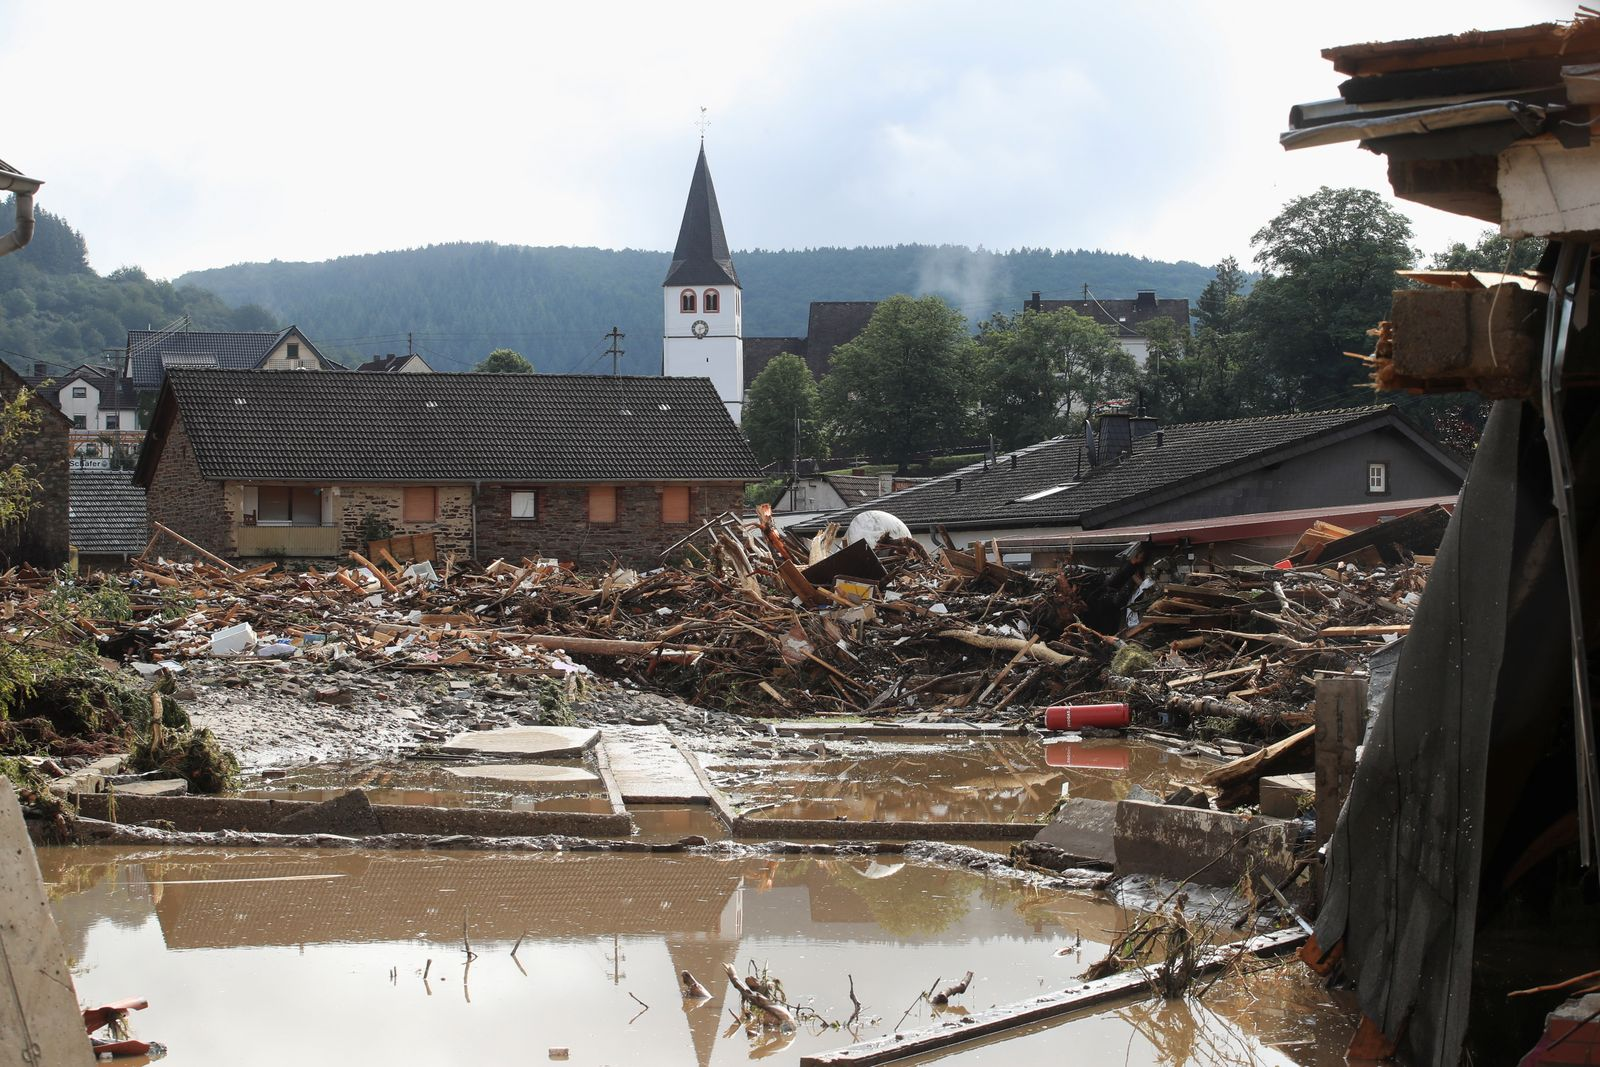 Collapsed houses are seen on a flood-affected area following heavy rainfalls in Schuld